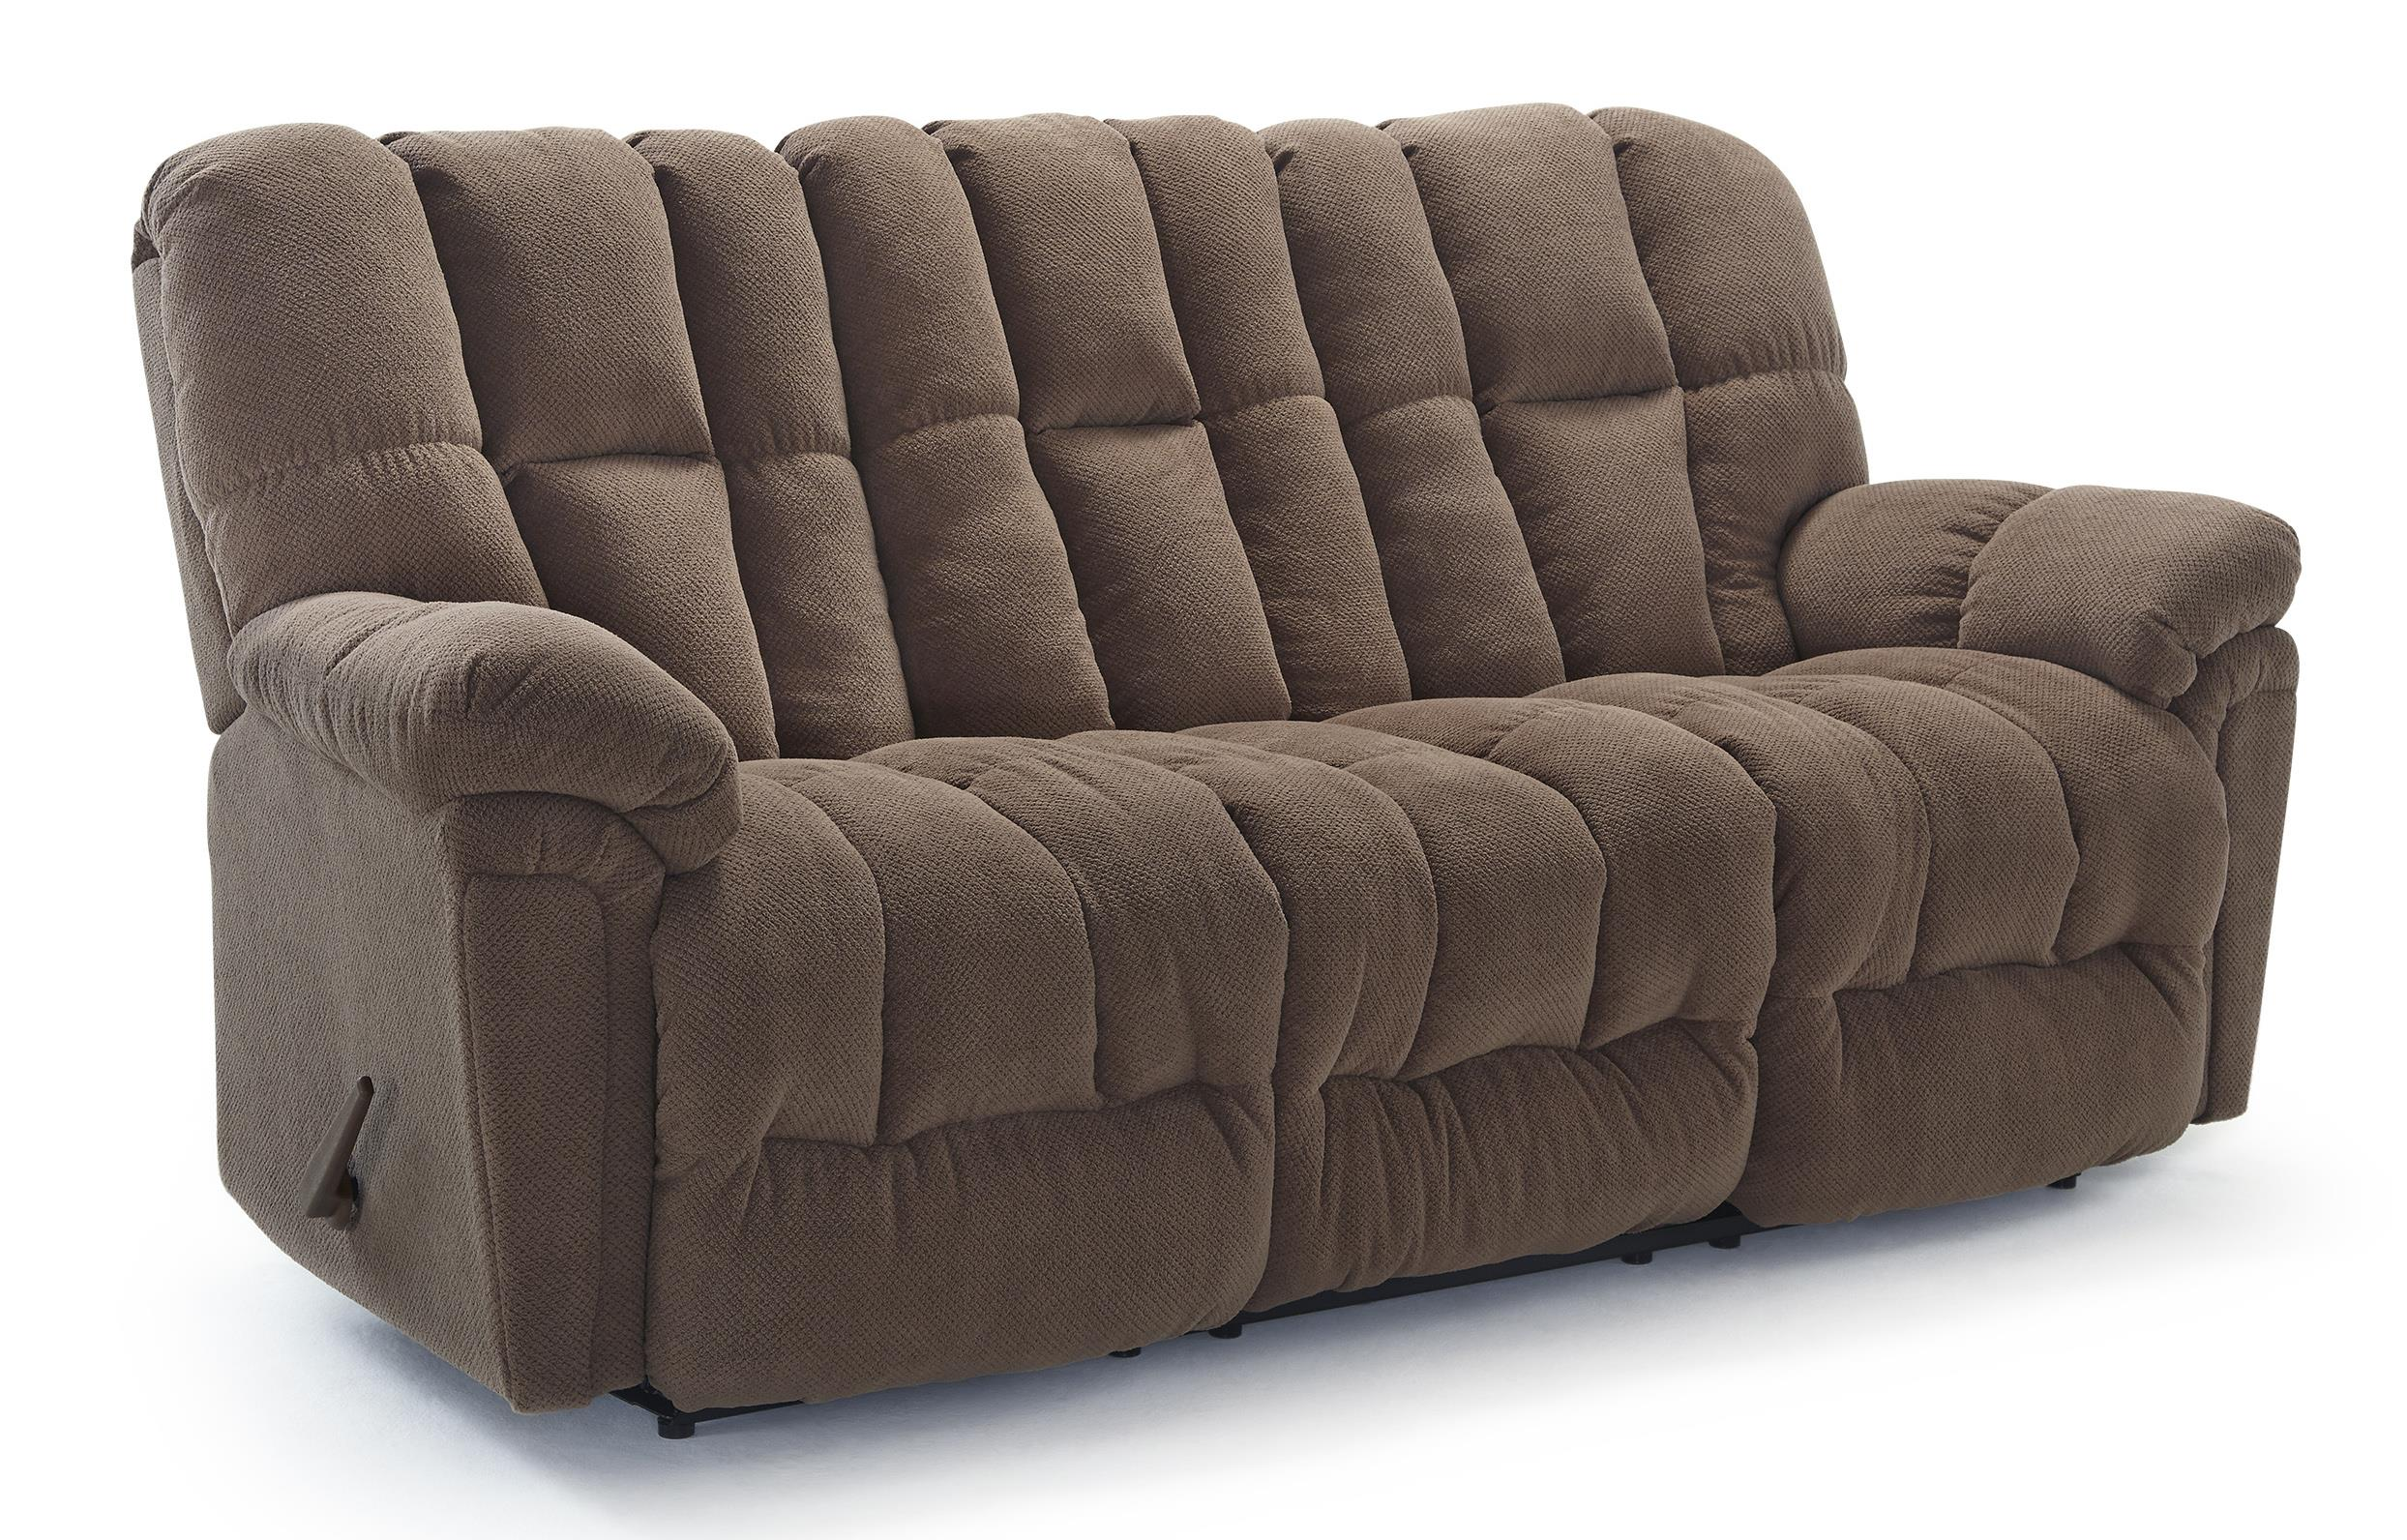 Best Home Furnishings Lucas Casual Plush Reclining Sofa With Full Coverage Chaise Legrest